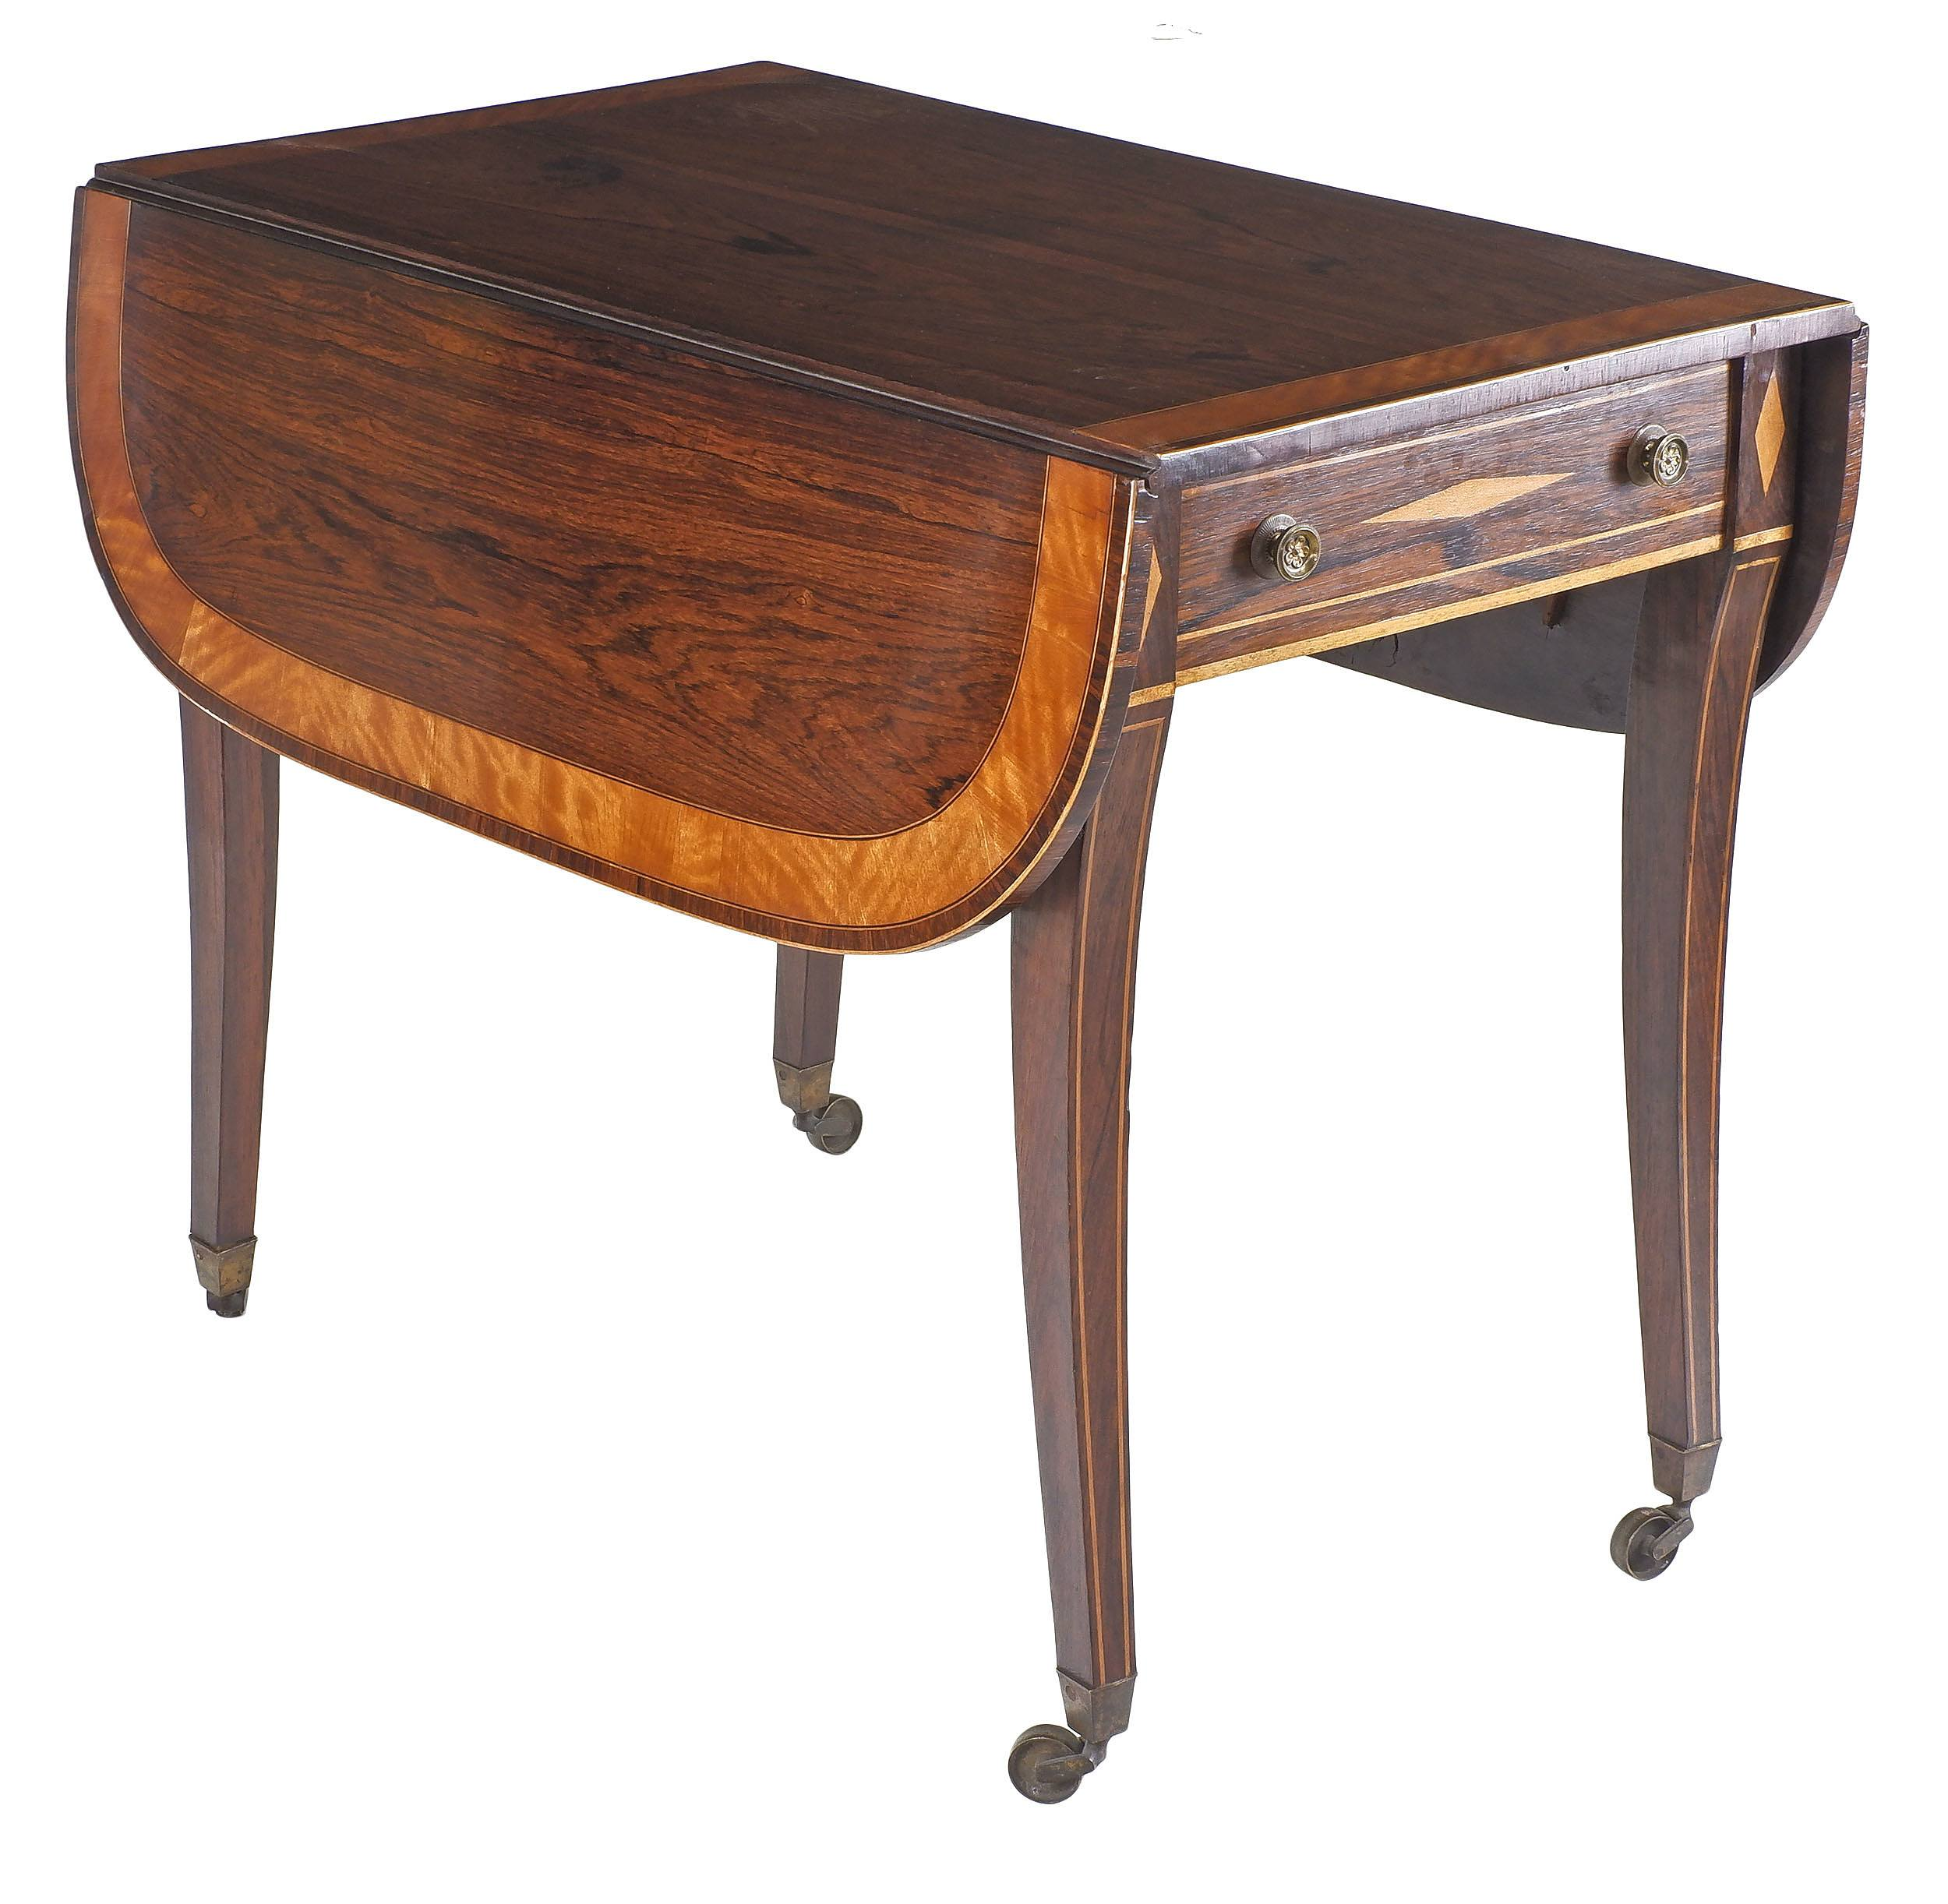 'Fine Regency Brazilian Rosewood Pembroke Table with Satinwood Crossbanding and String Inlay of Ebony and Boxwood Circa 1820'